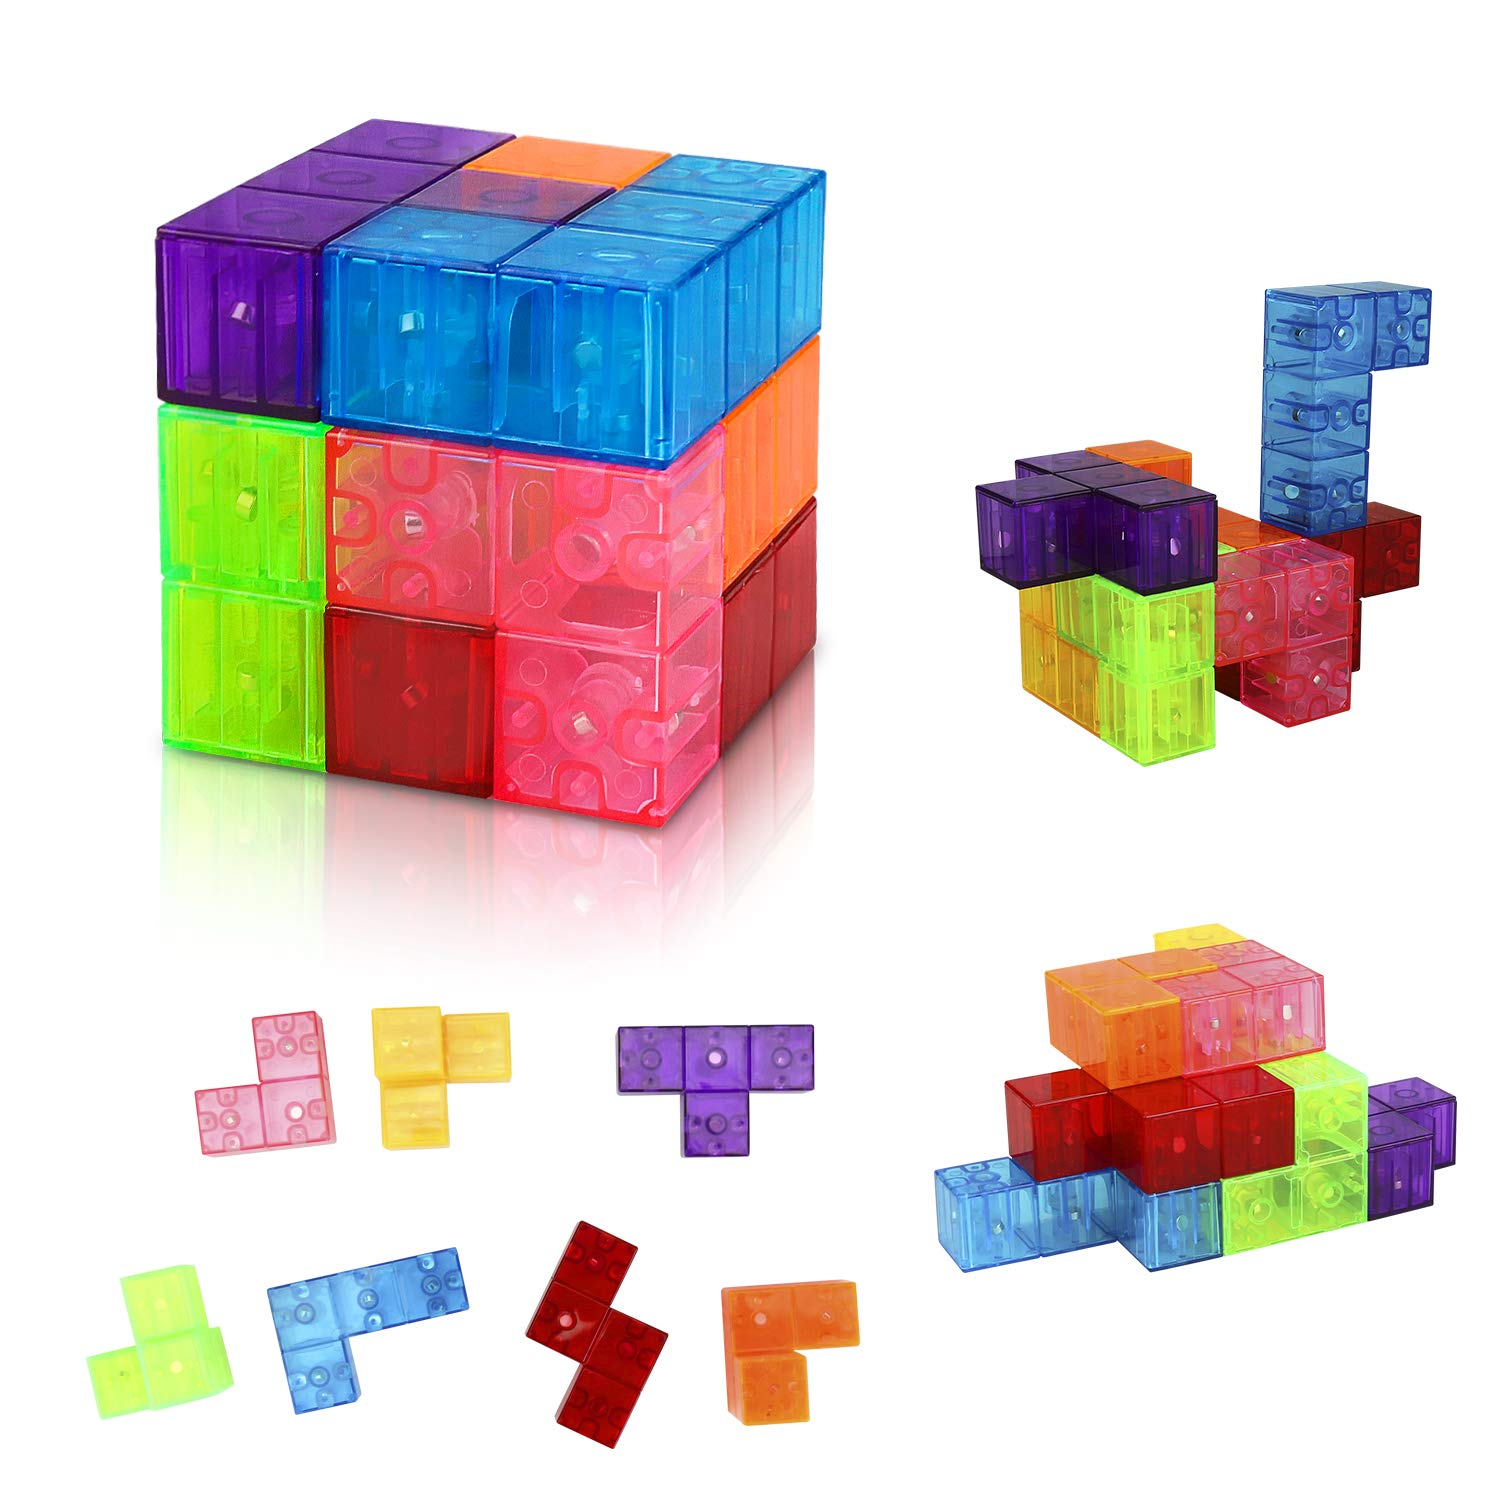 welltop Magnetic Toys Magic Cubes Magnet Blocks for Kids Magnetic Building Blocks Bricks Toy for Adults, Stress Relief, Educational Puzzles